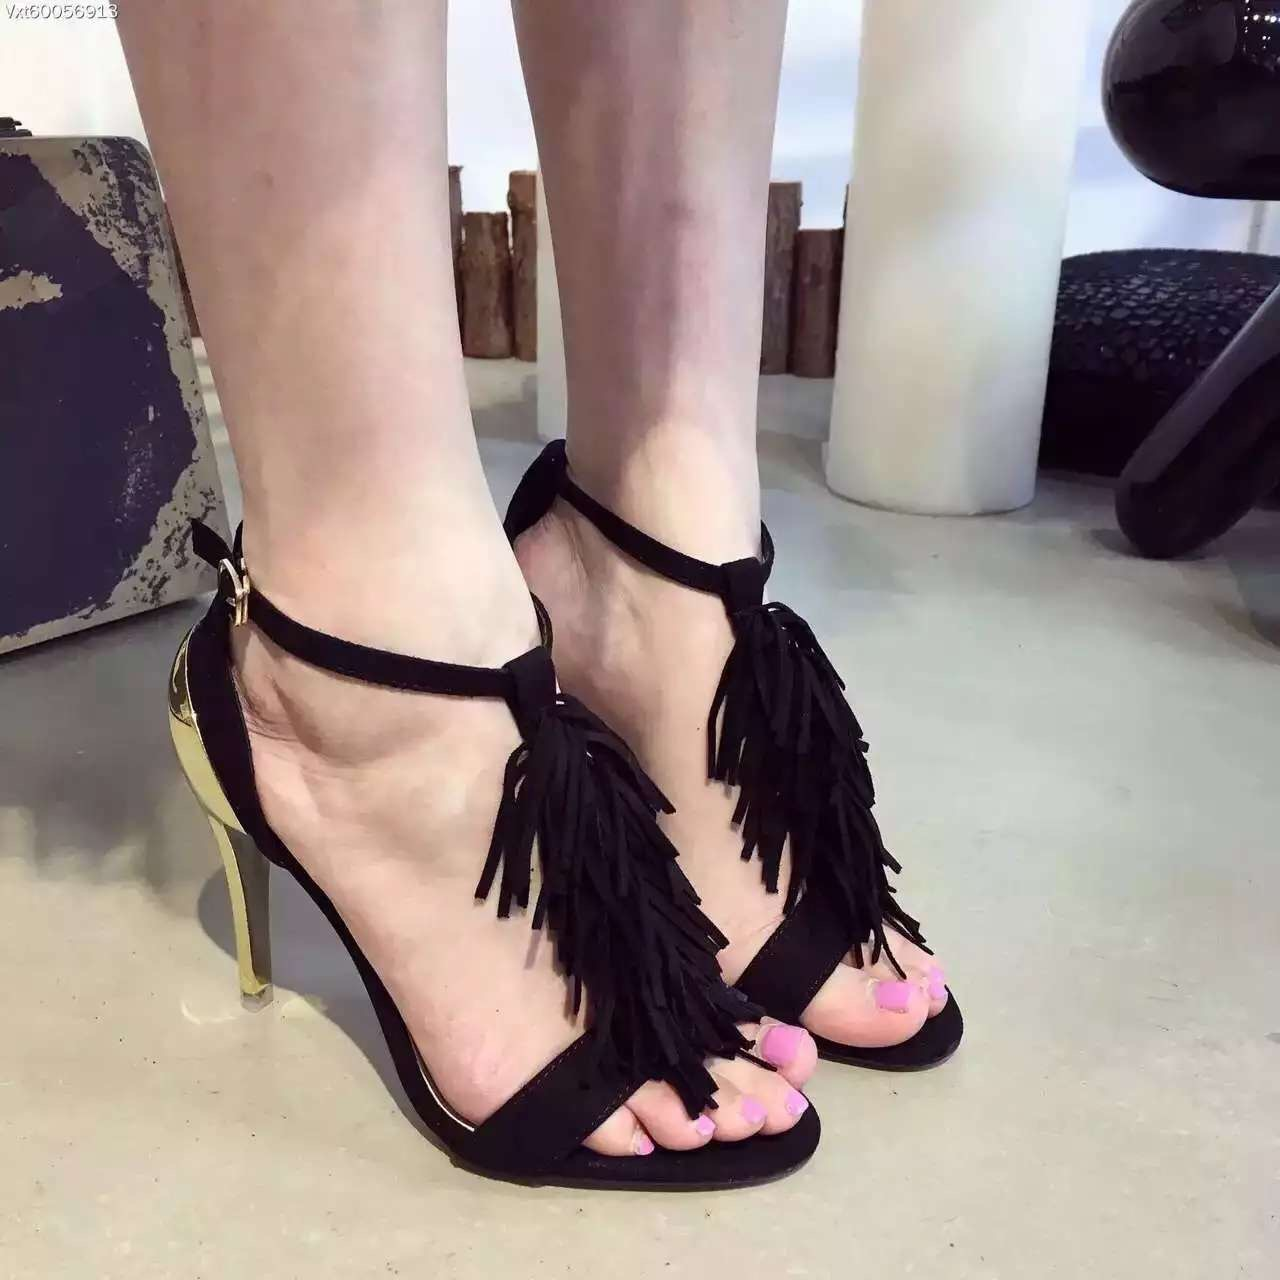 2017 Women Tassel Sandals 11 cm Gold Heel Sandals Open Toe High Heel Fringe Summer Shoes<br><br>Aliexpress